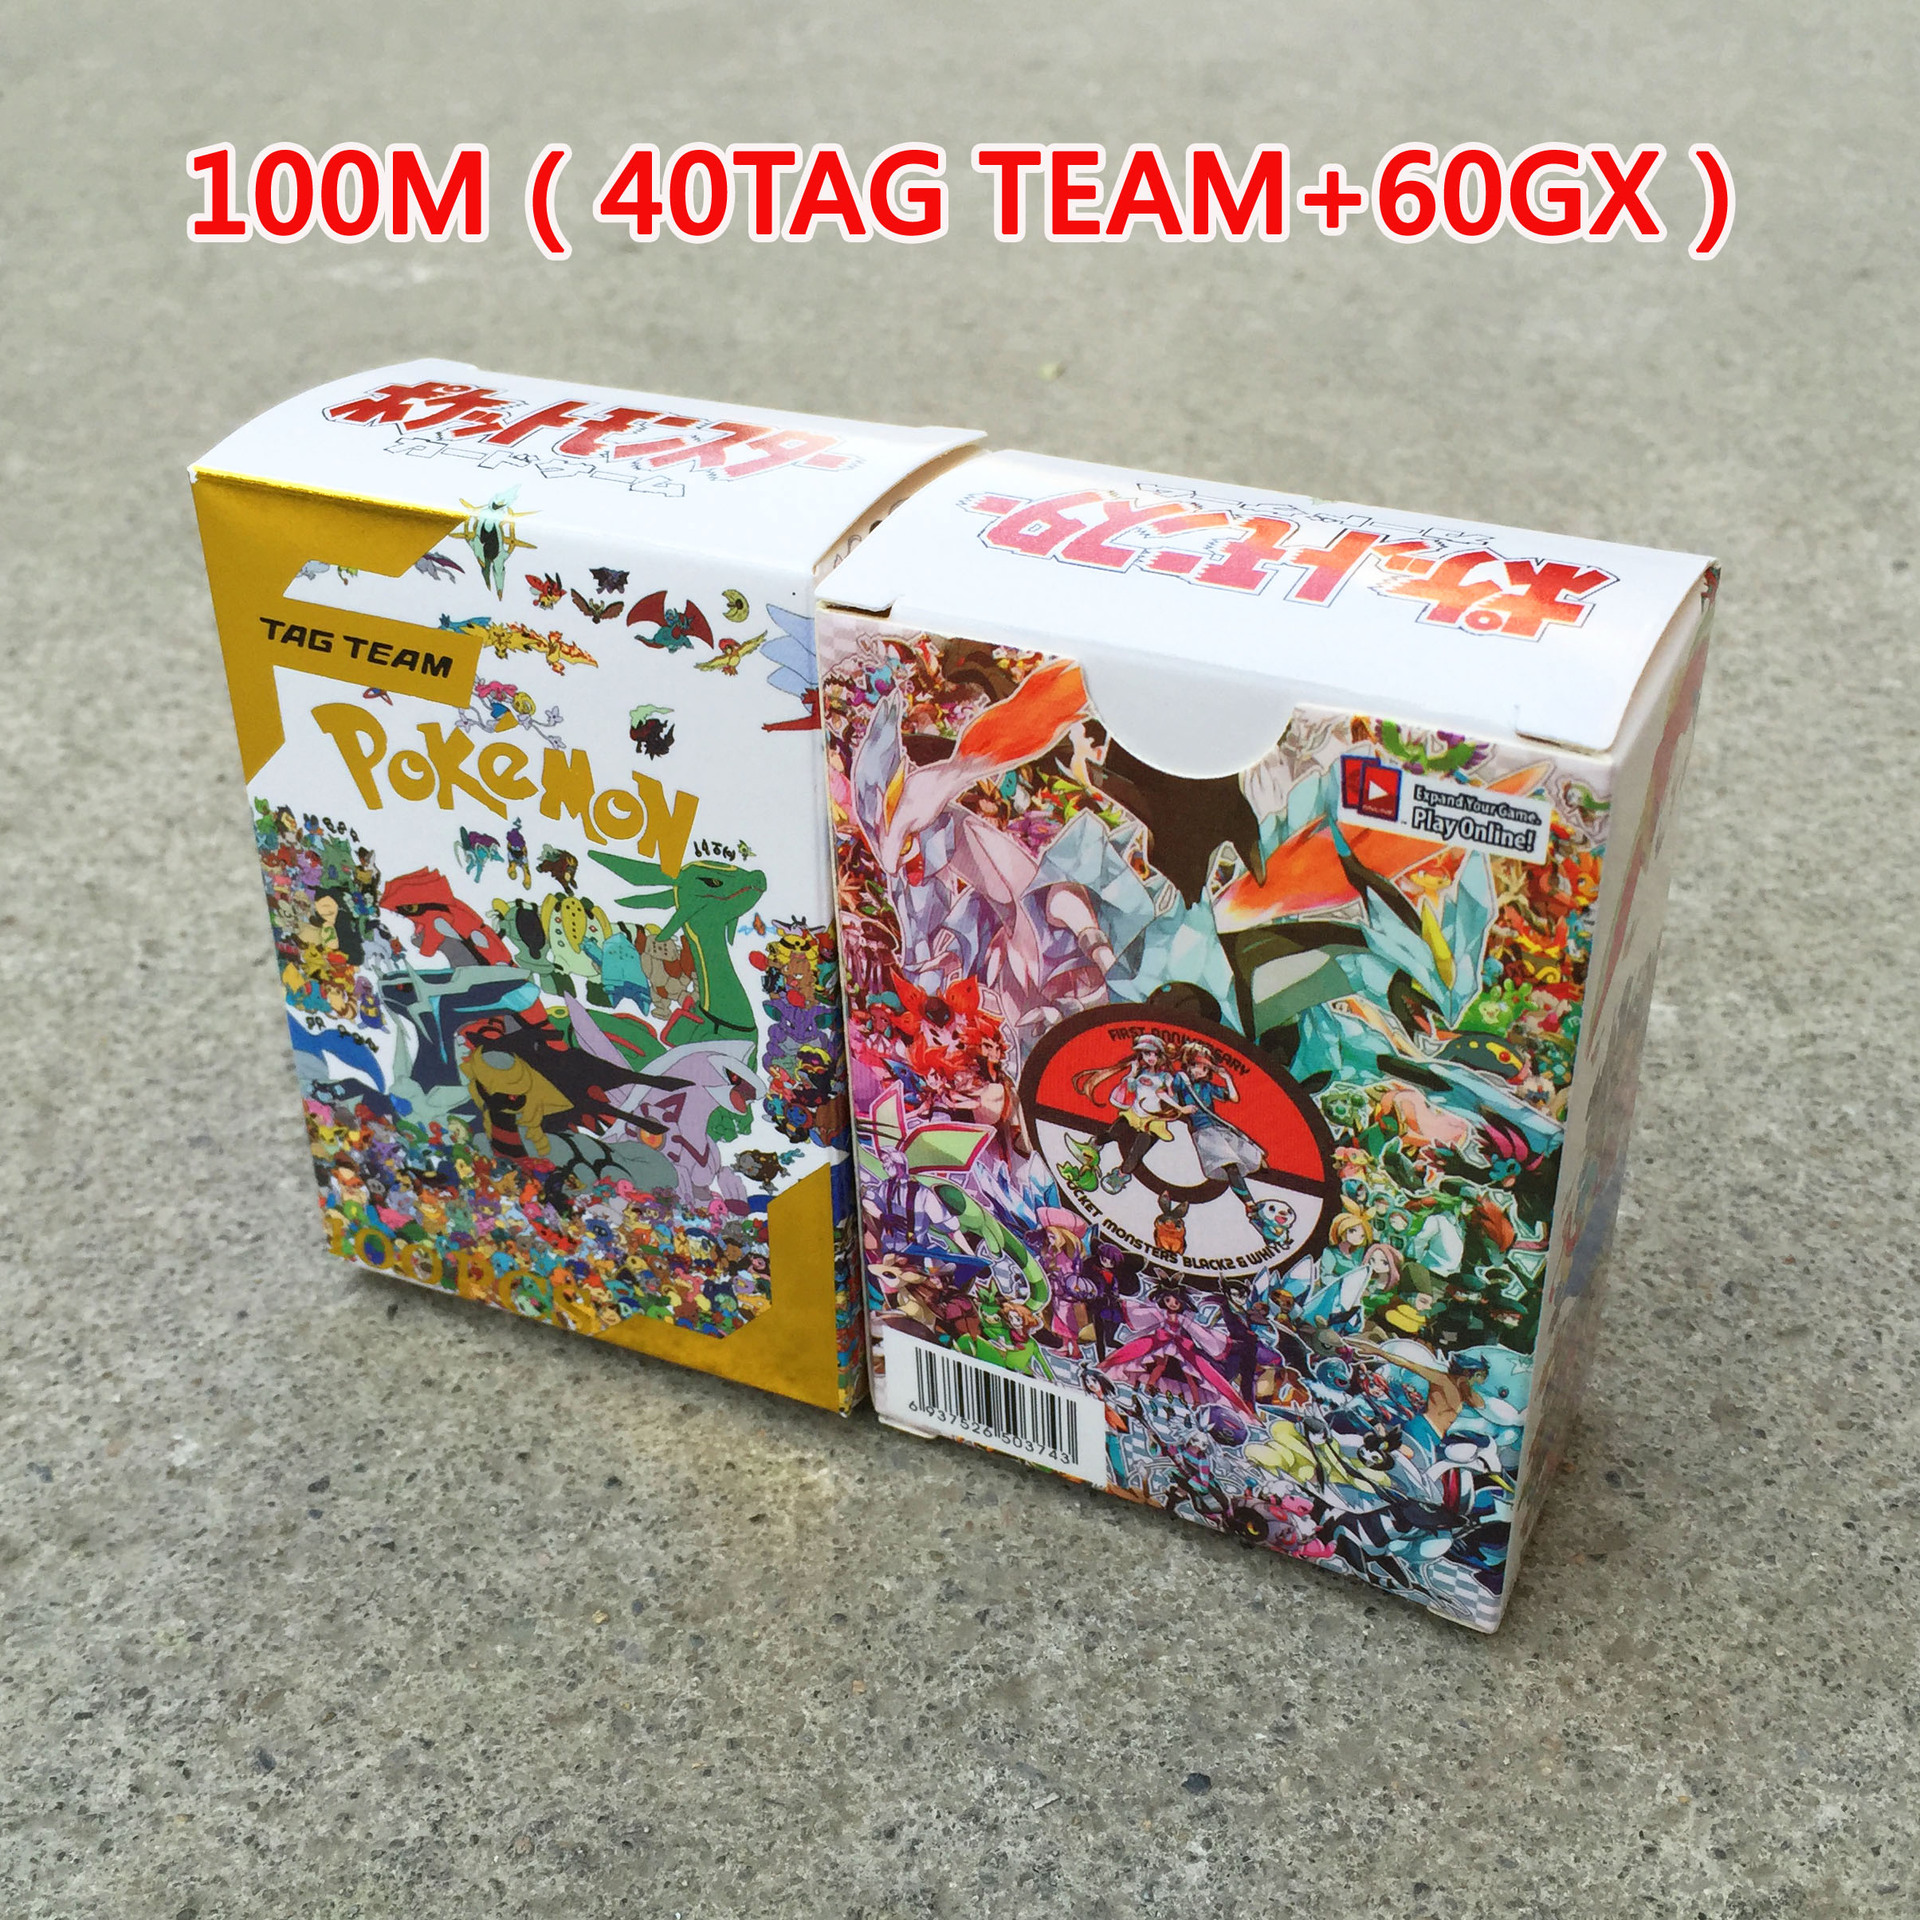 takara-tomy-font-b-pokemon-b-font-new-100pcs-tag-team-battle-toys-hobbies-collectibles-game-collection-anime-cards-for-children-christmas-gift